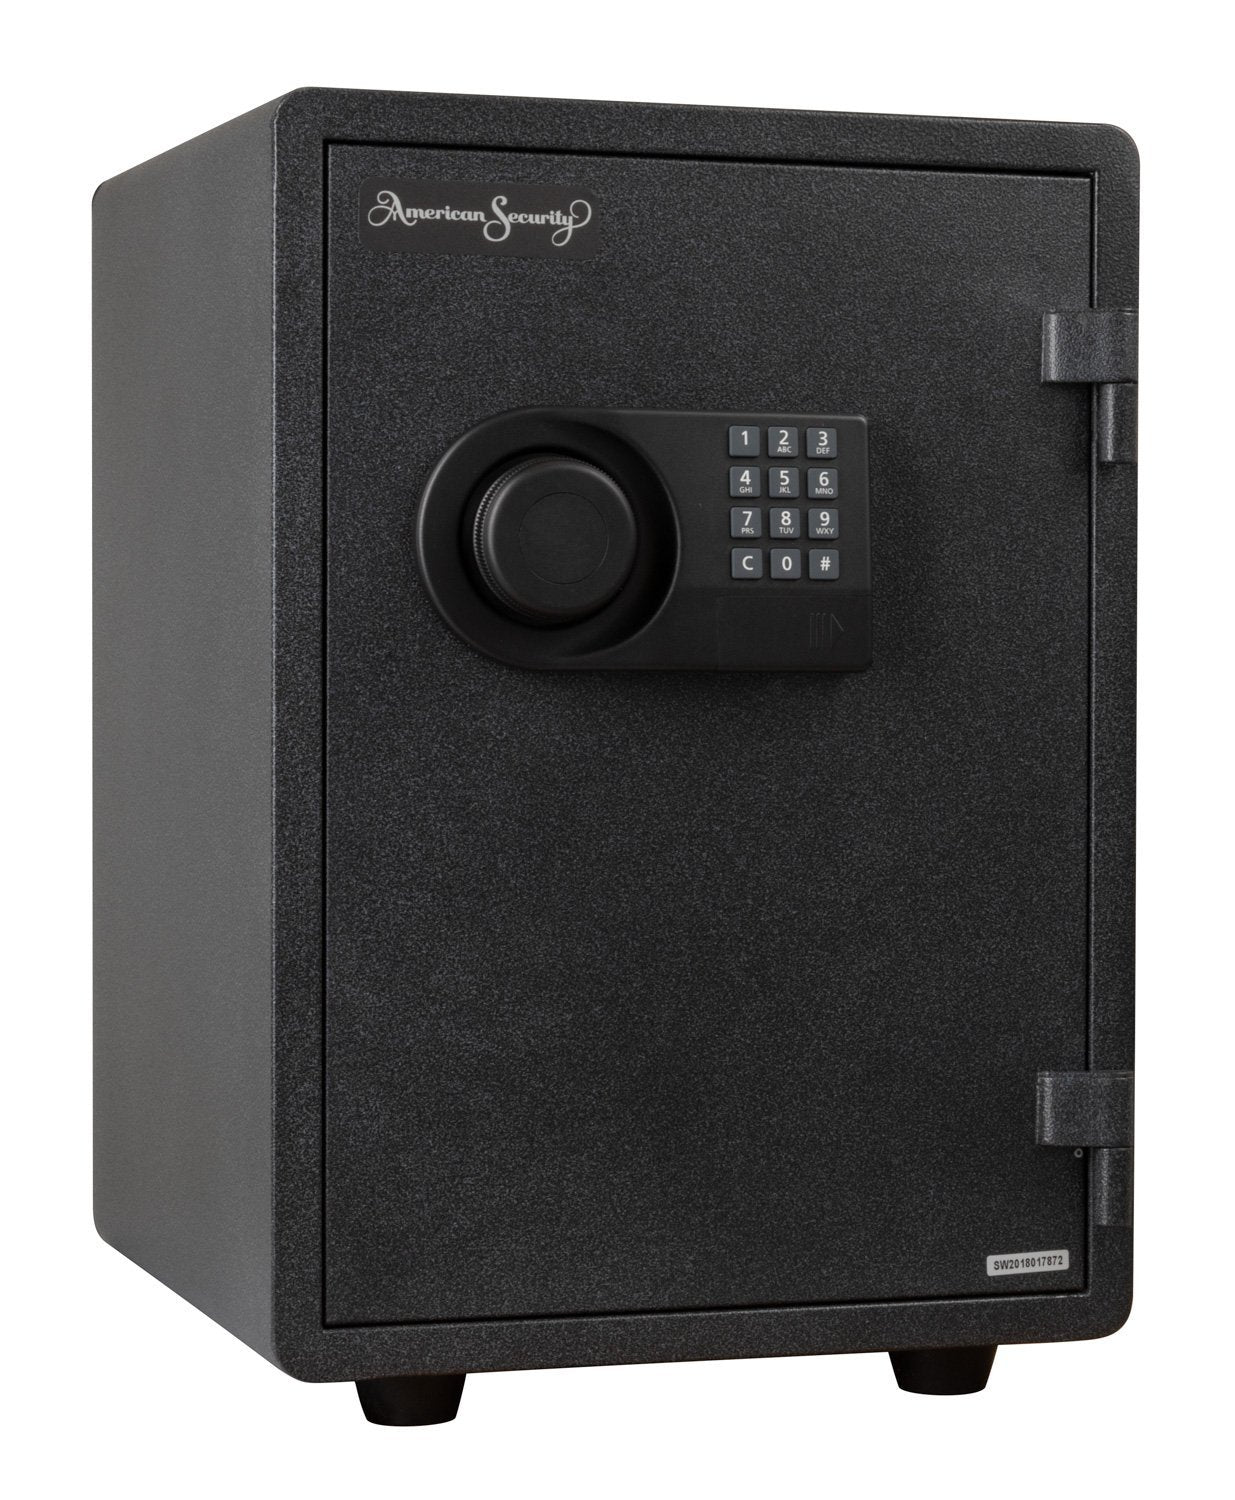 Fireproof Safes & Waterproof Chests - AMSEC FS149E5LP Fire Safe